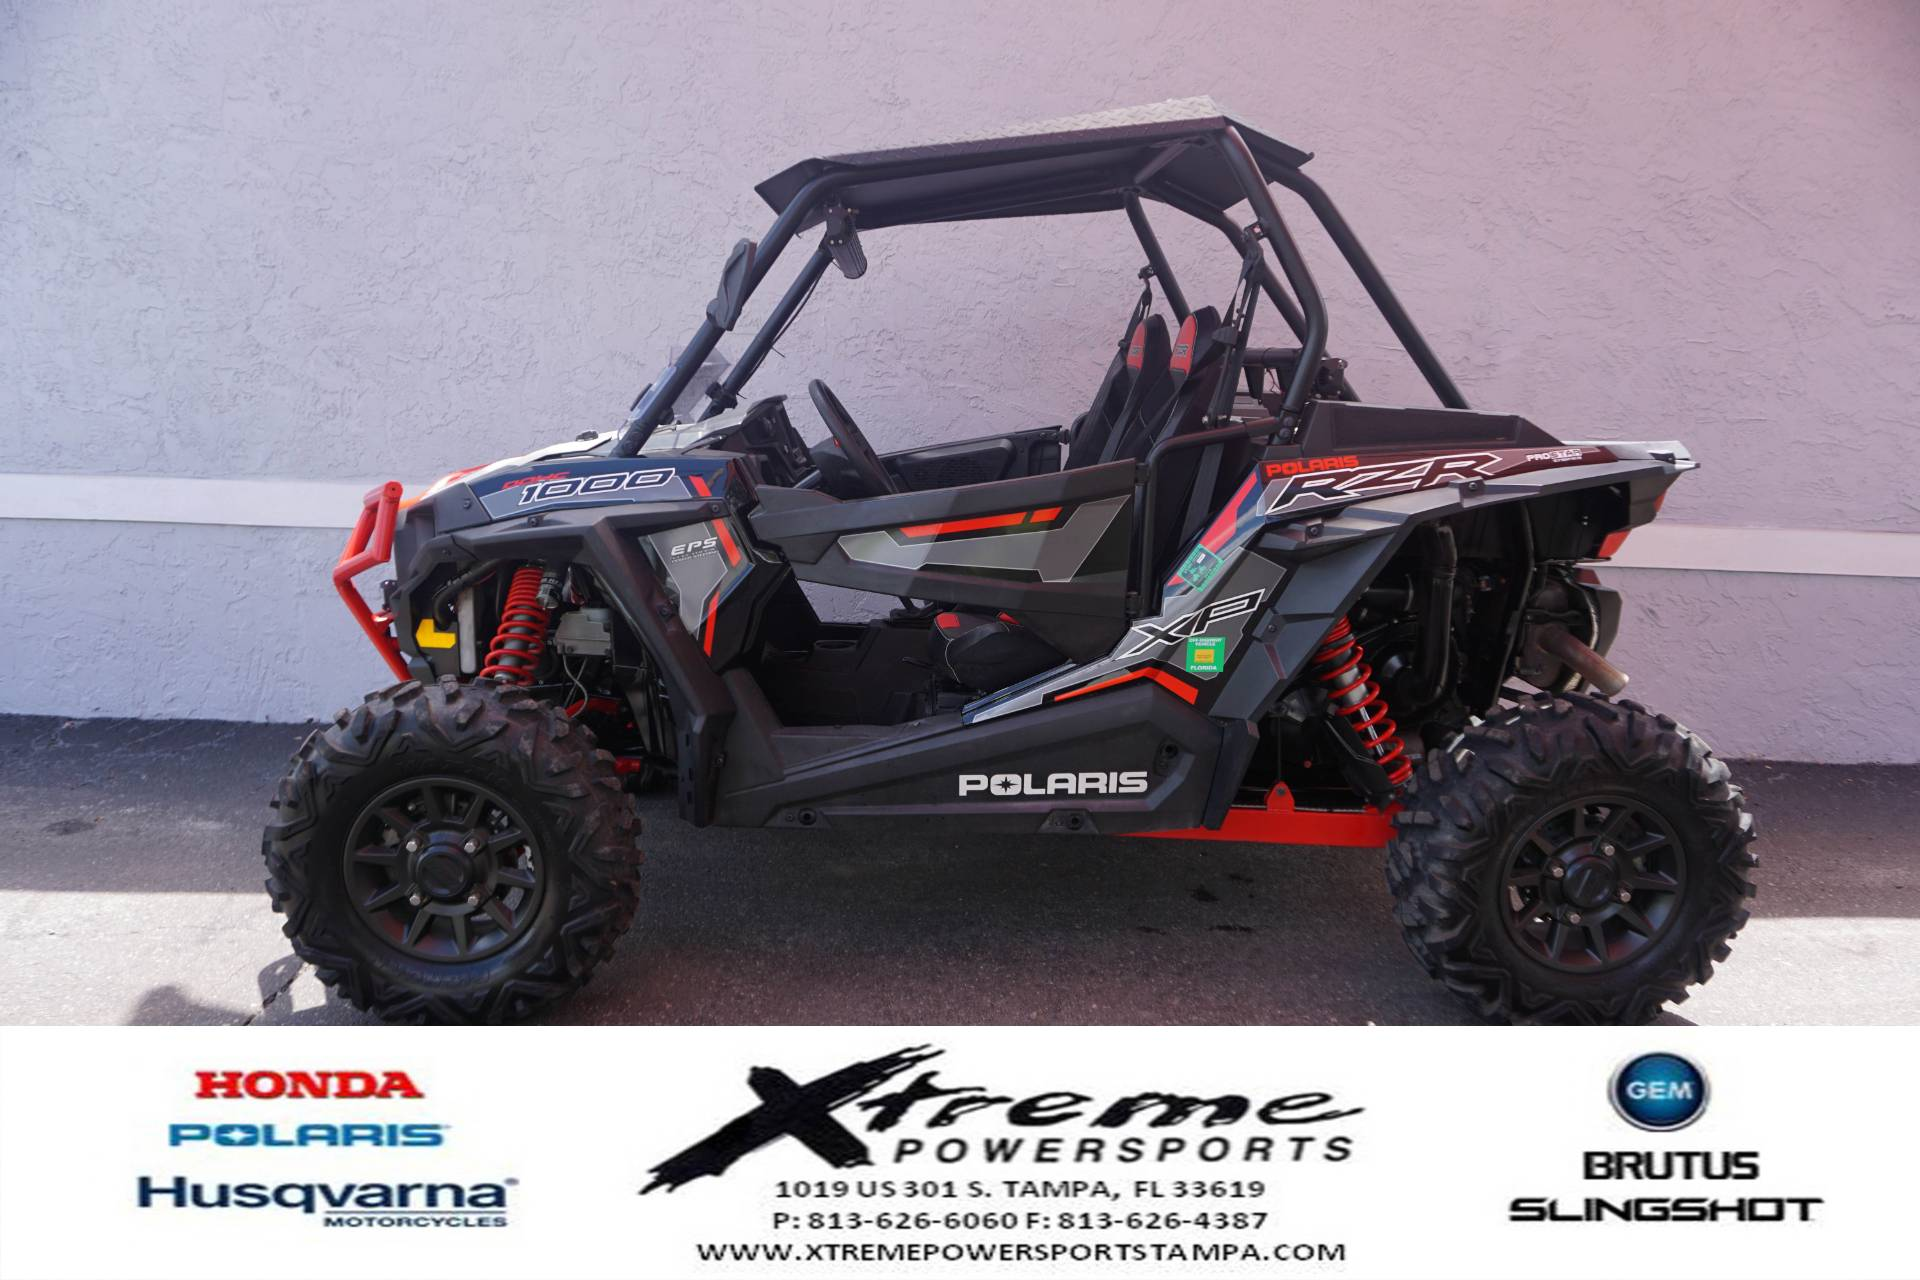 2018 Polaris RZR XP1000 LE EPS in Tampa, Florida - Photo 1